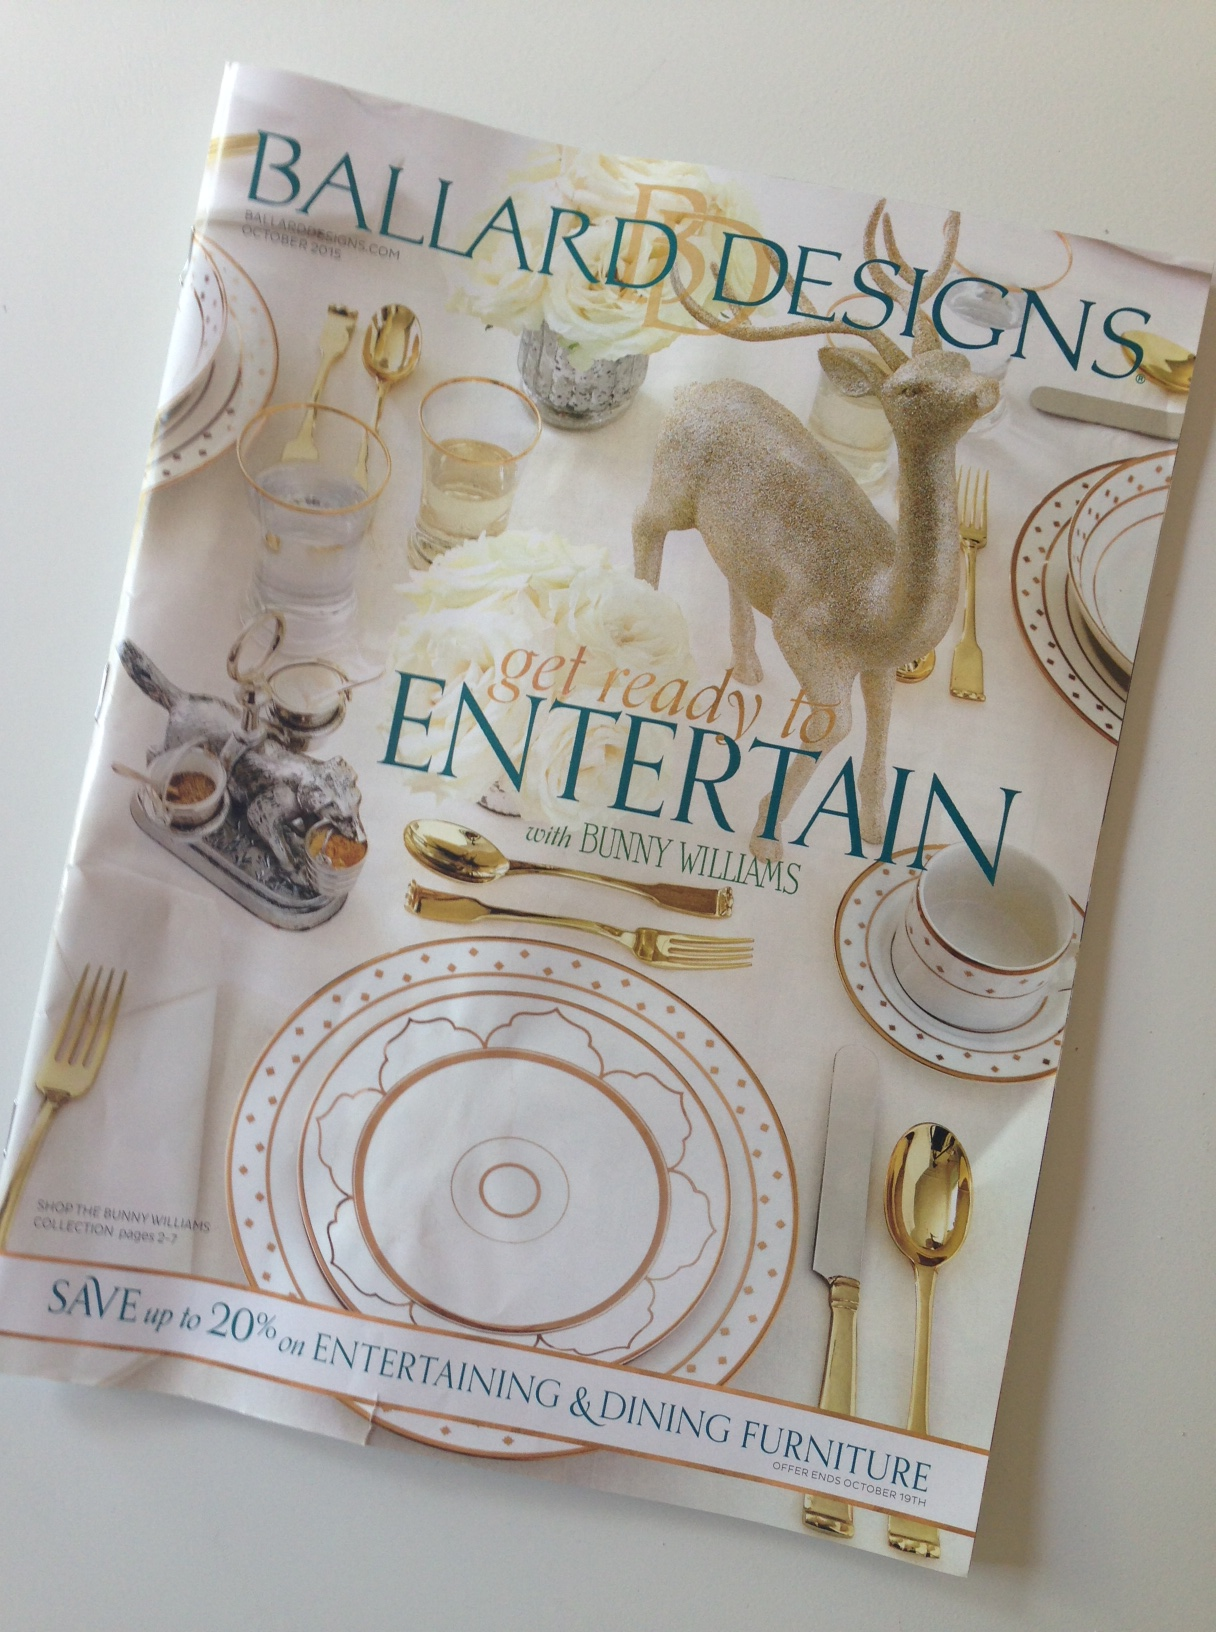 don t miss these ballard designs finds avenue of joy i was leafing through my ballard designs catalog and quite a few things were catching my eye and lots on sale so i decided to go online and further my